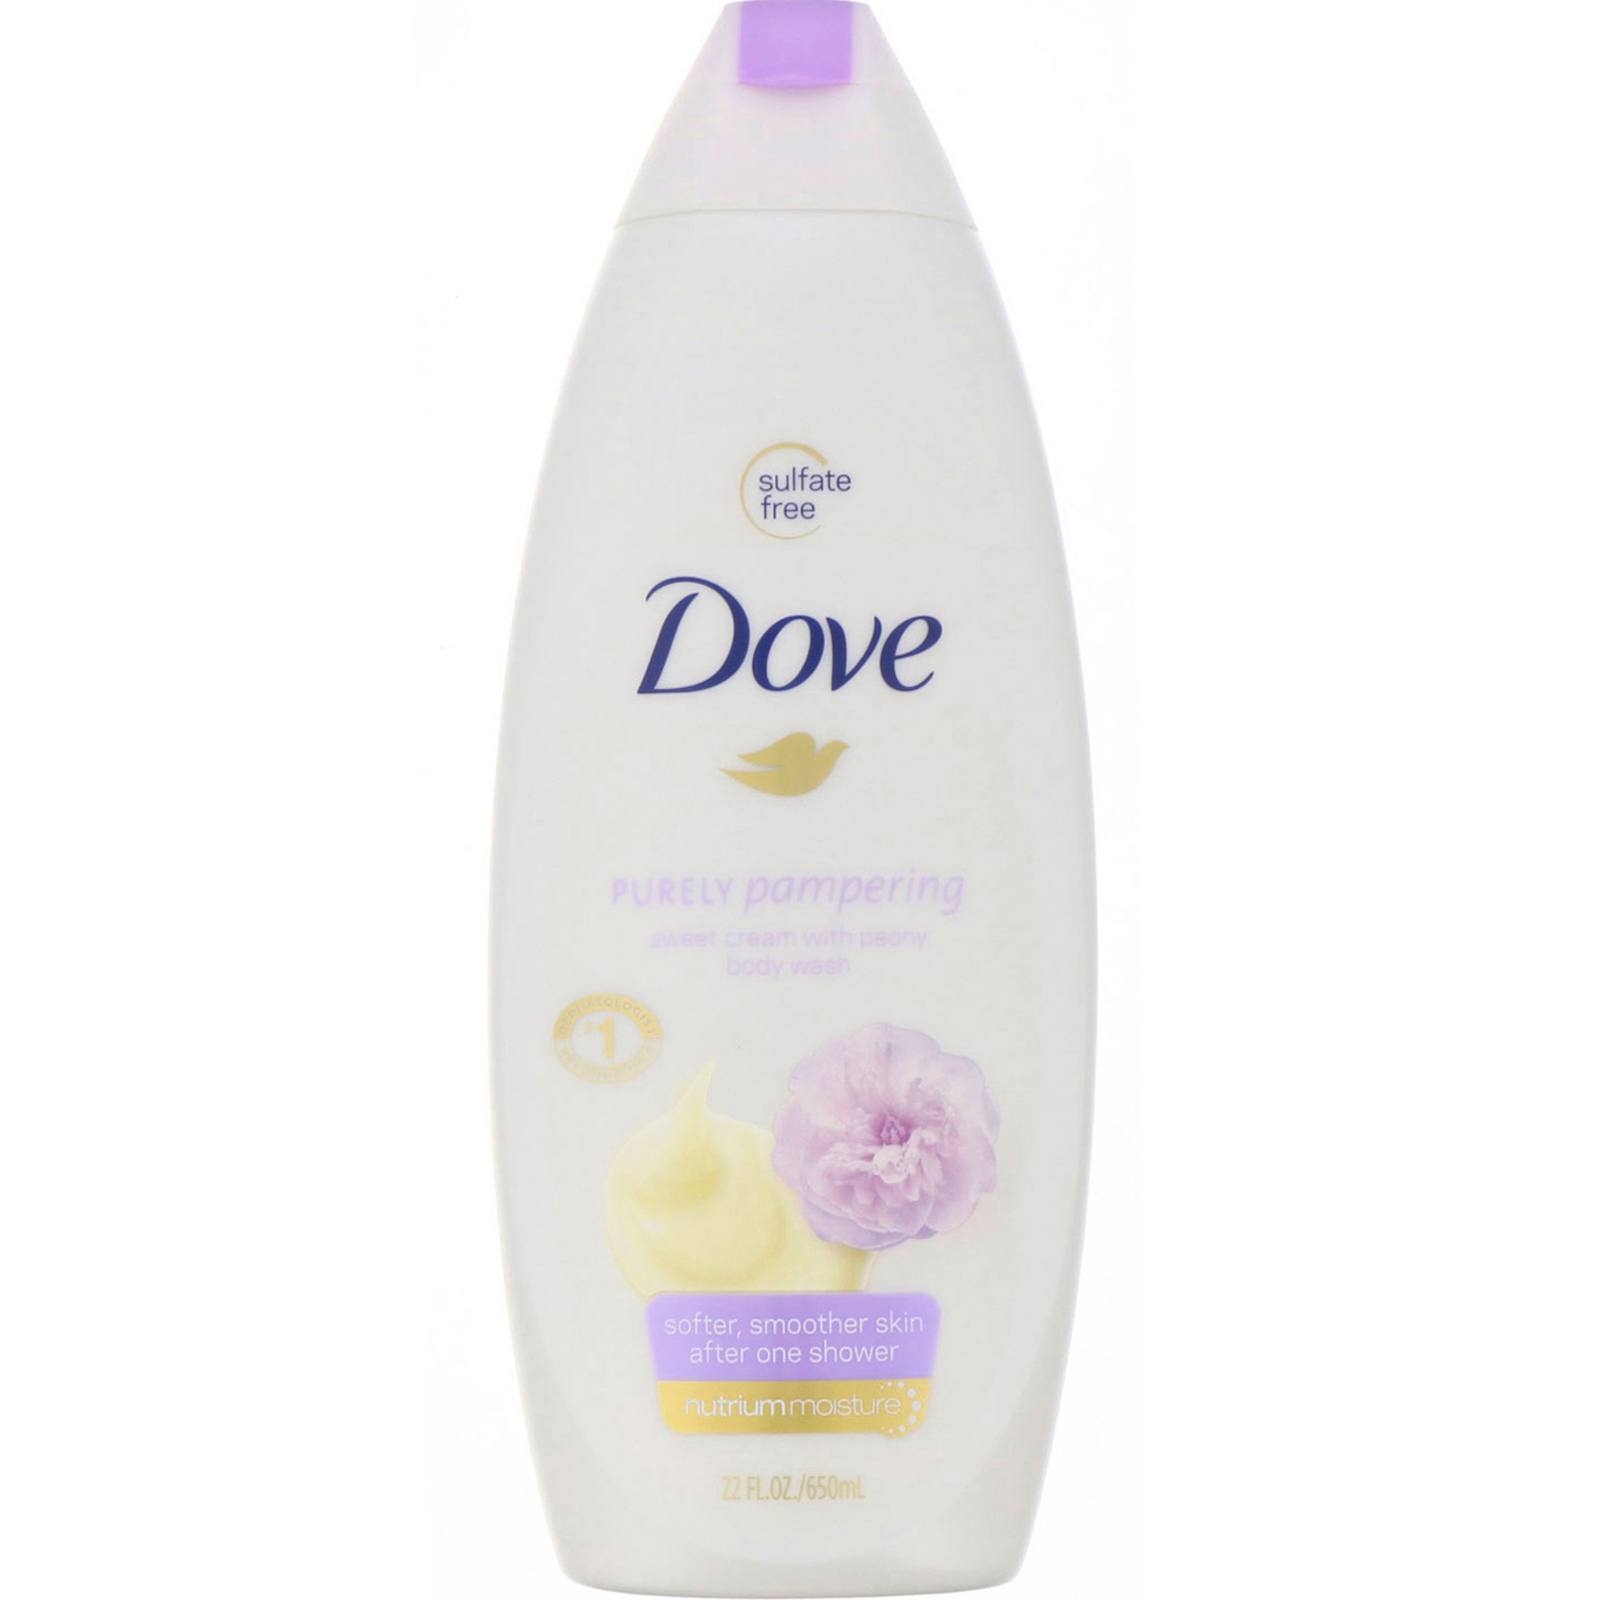 Dove Purely Pampering Body Wash Sweet Cream With Peony 22 Fl Oz 650 Ml Iherb